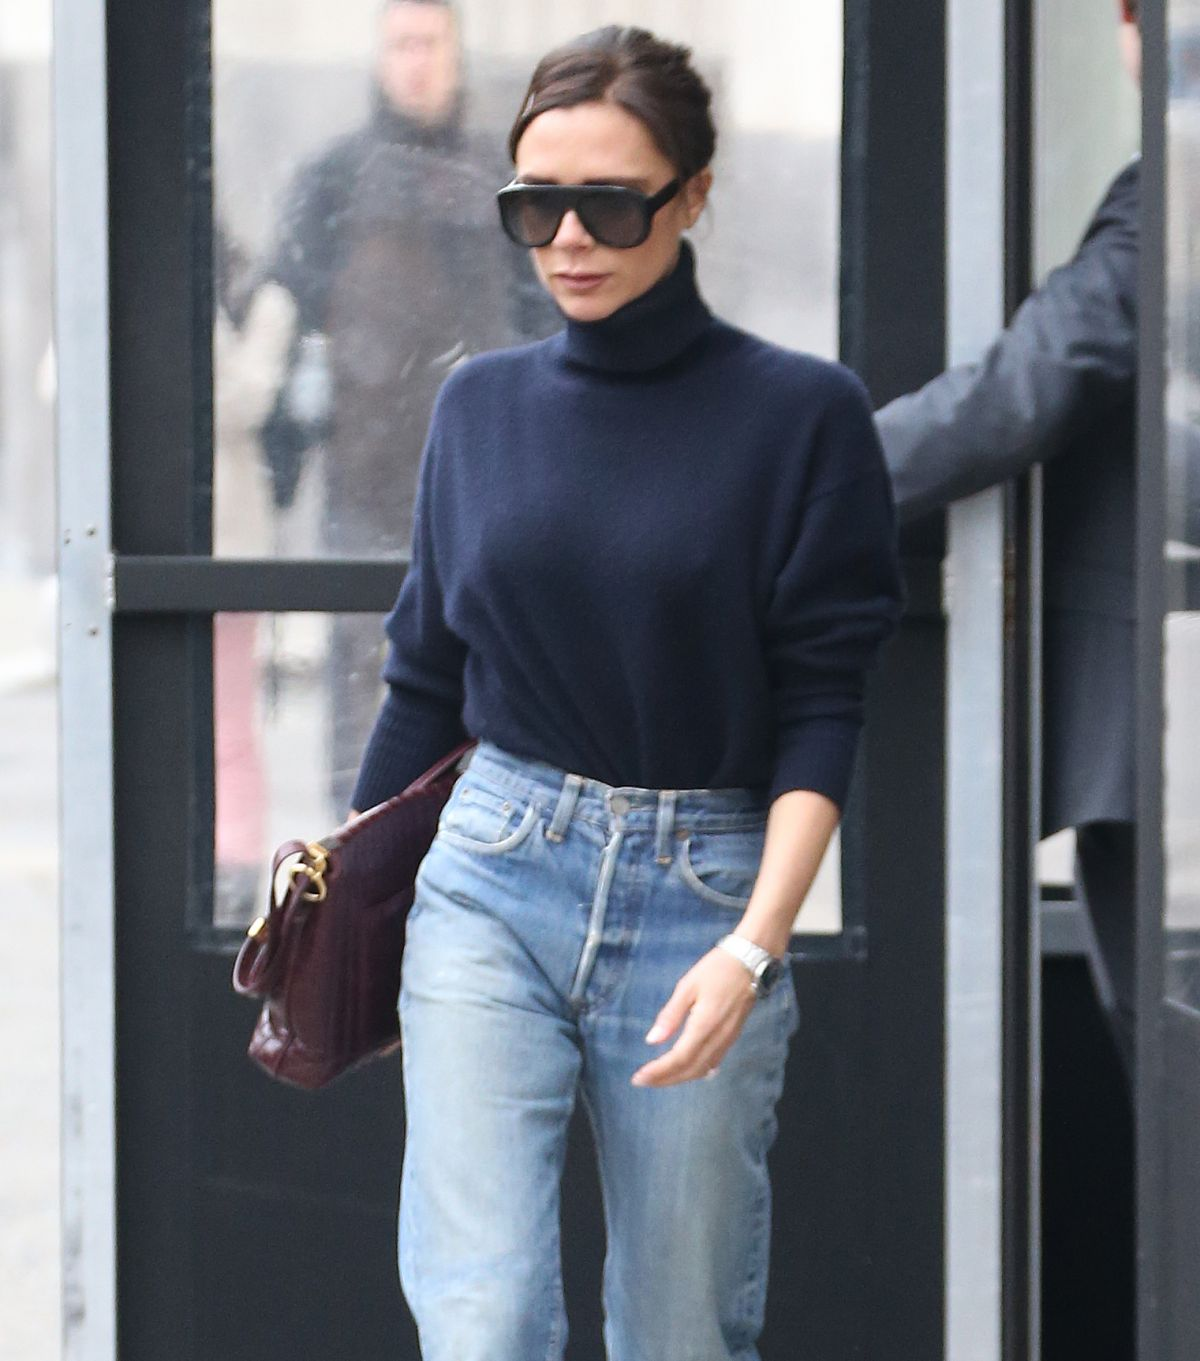 victoria beckham in jeans out in new york 02 09 2018 hawtcelebs hawtcelebs. Black Bedroom Furniture Sets. Home Design Ideas